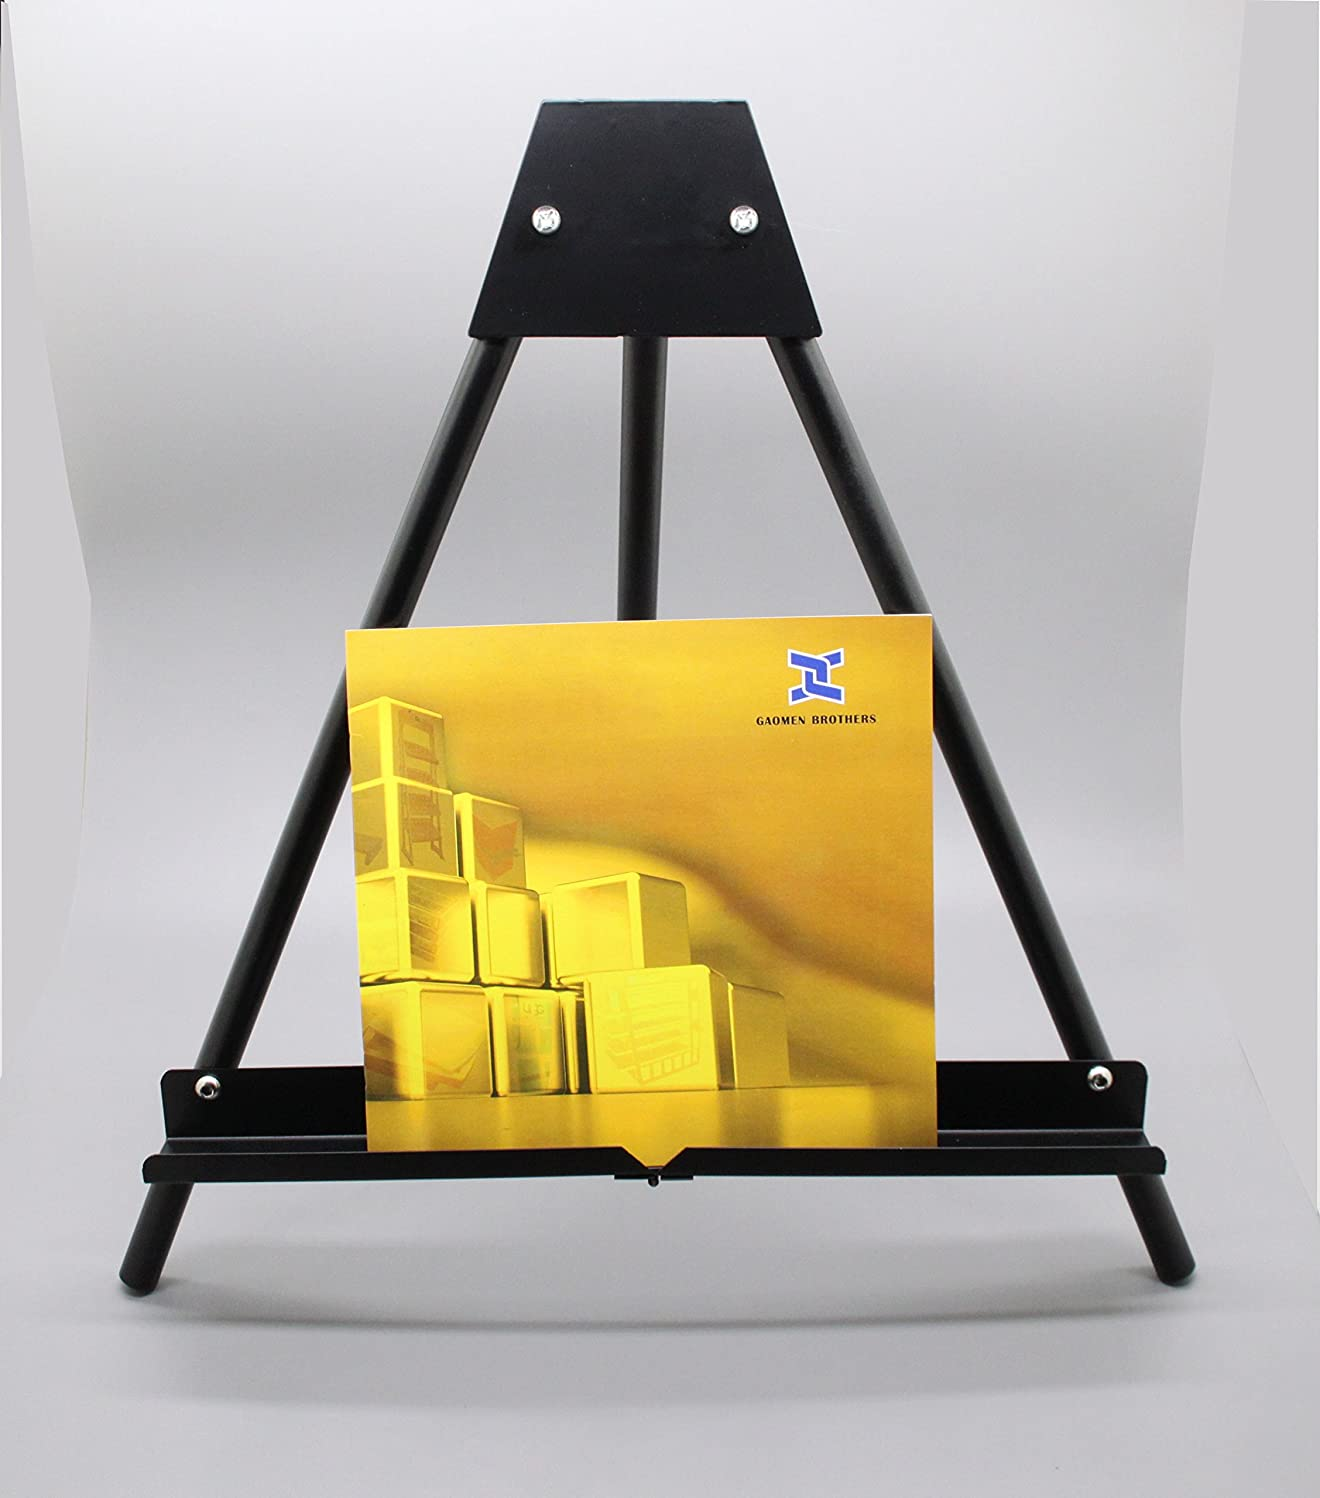 FixtureDisplays Table Top Easel with Portable Design, 17.5 x 16.75 - Black 19449-FBA